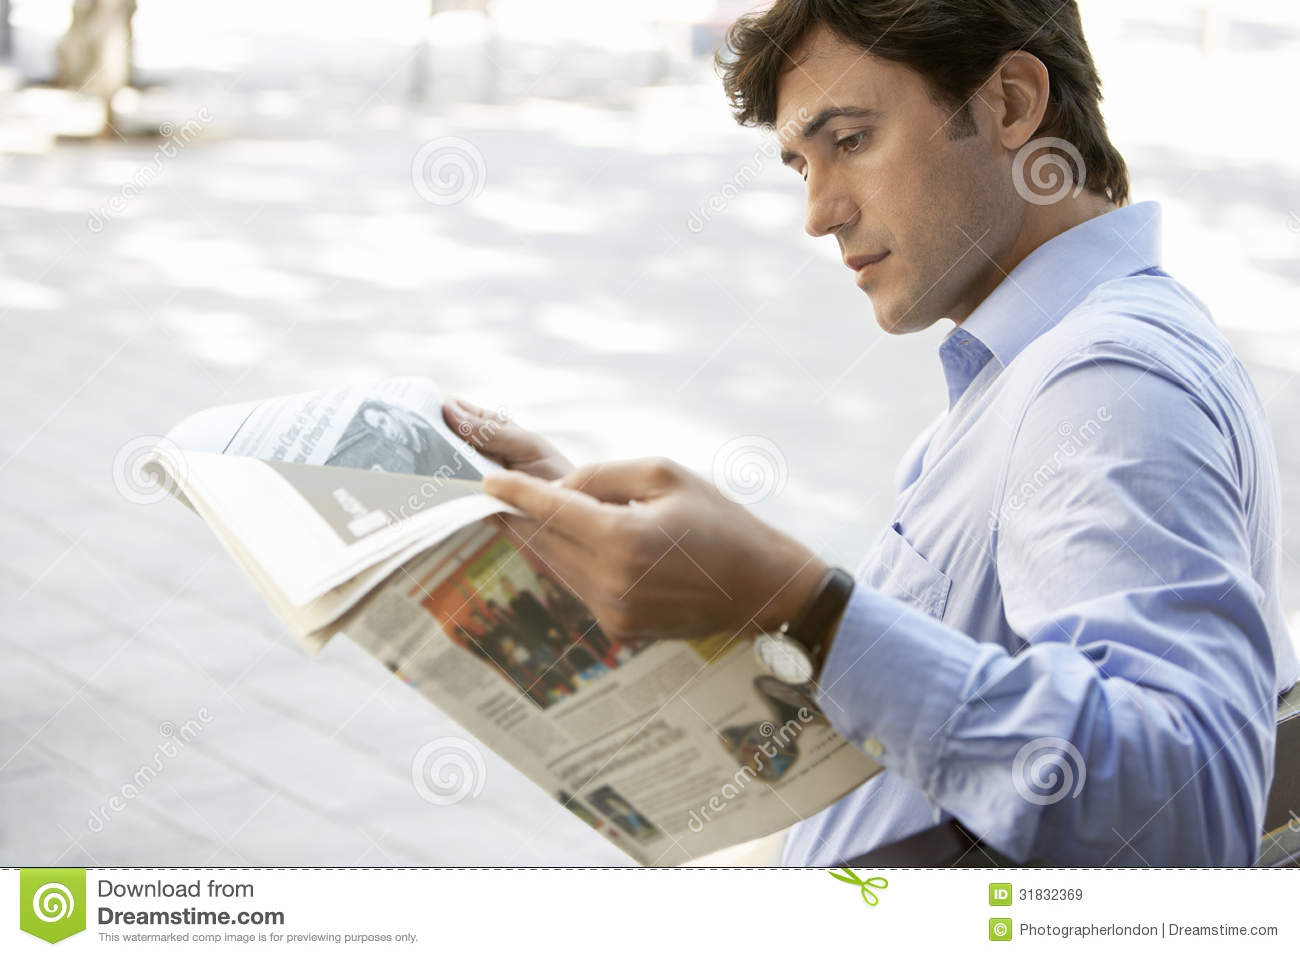 businessman reading newspaper on bench stock photo 31832369 - megapixl